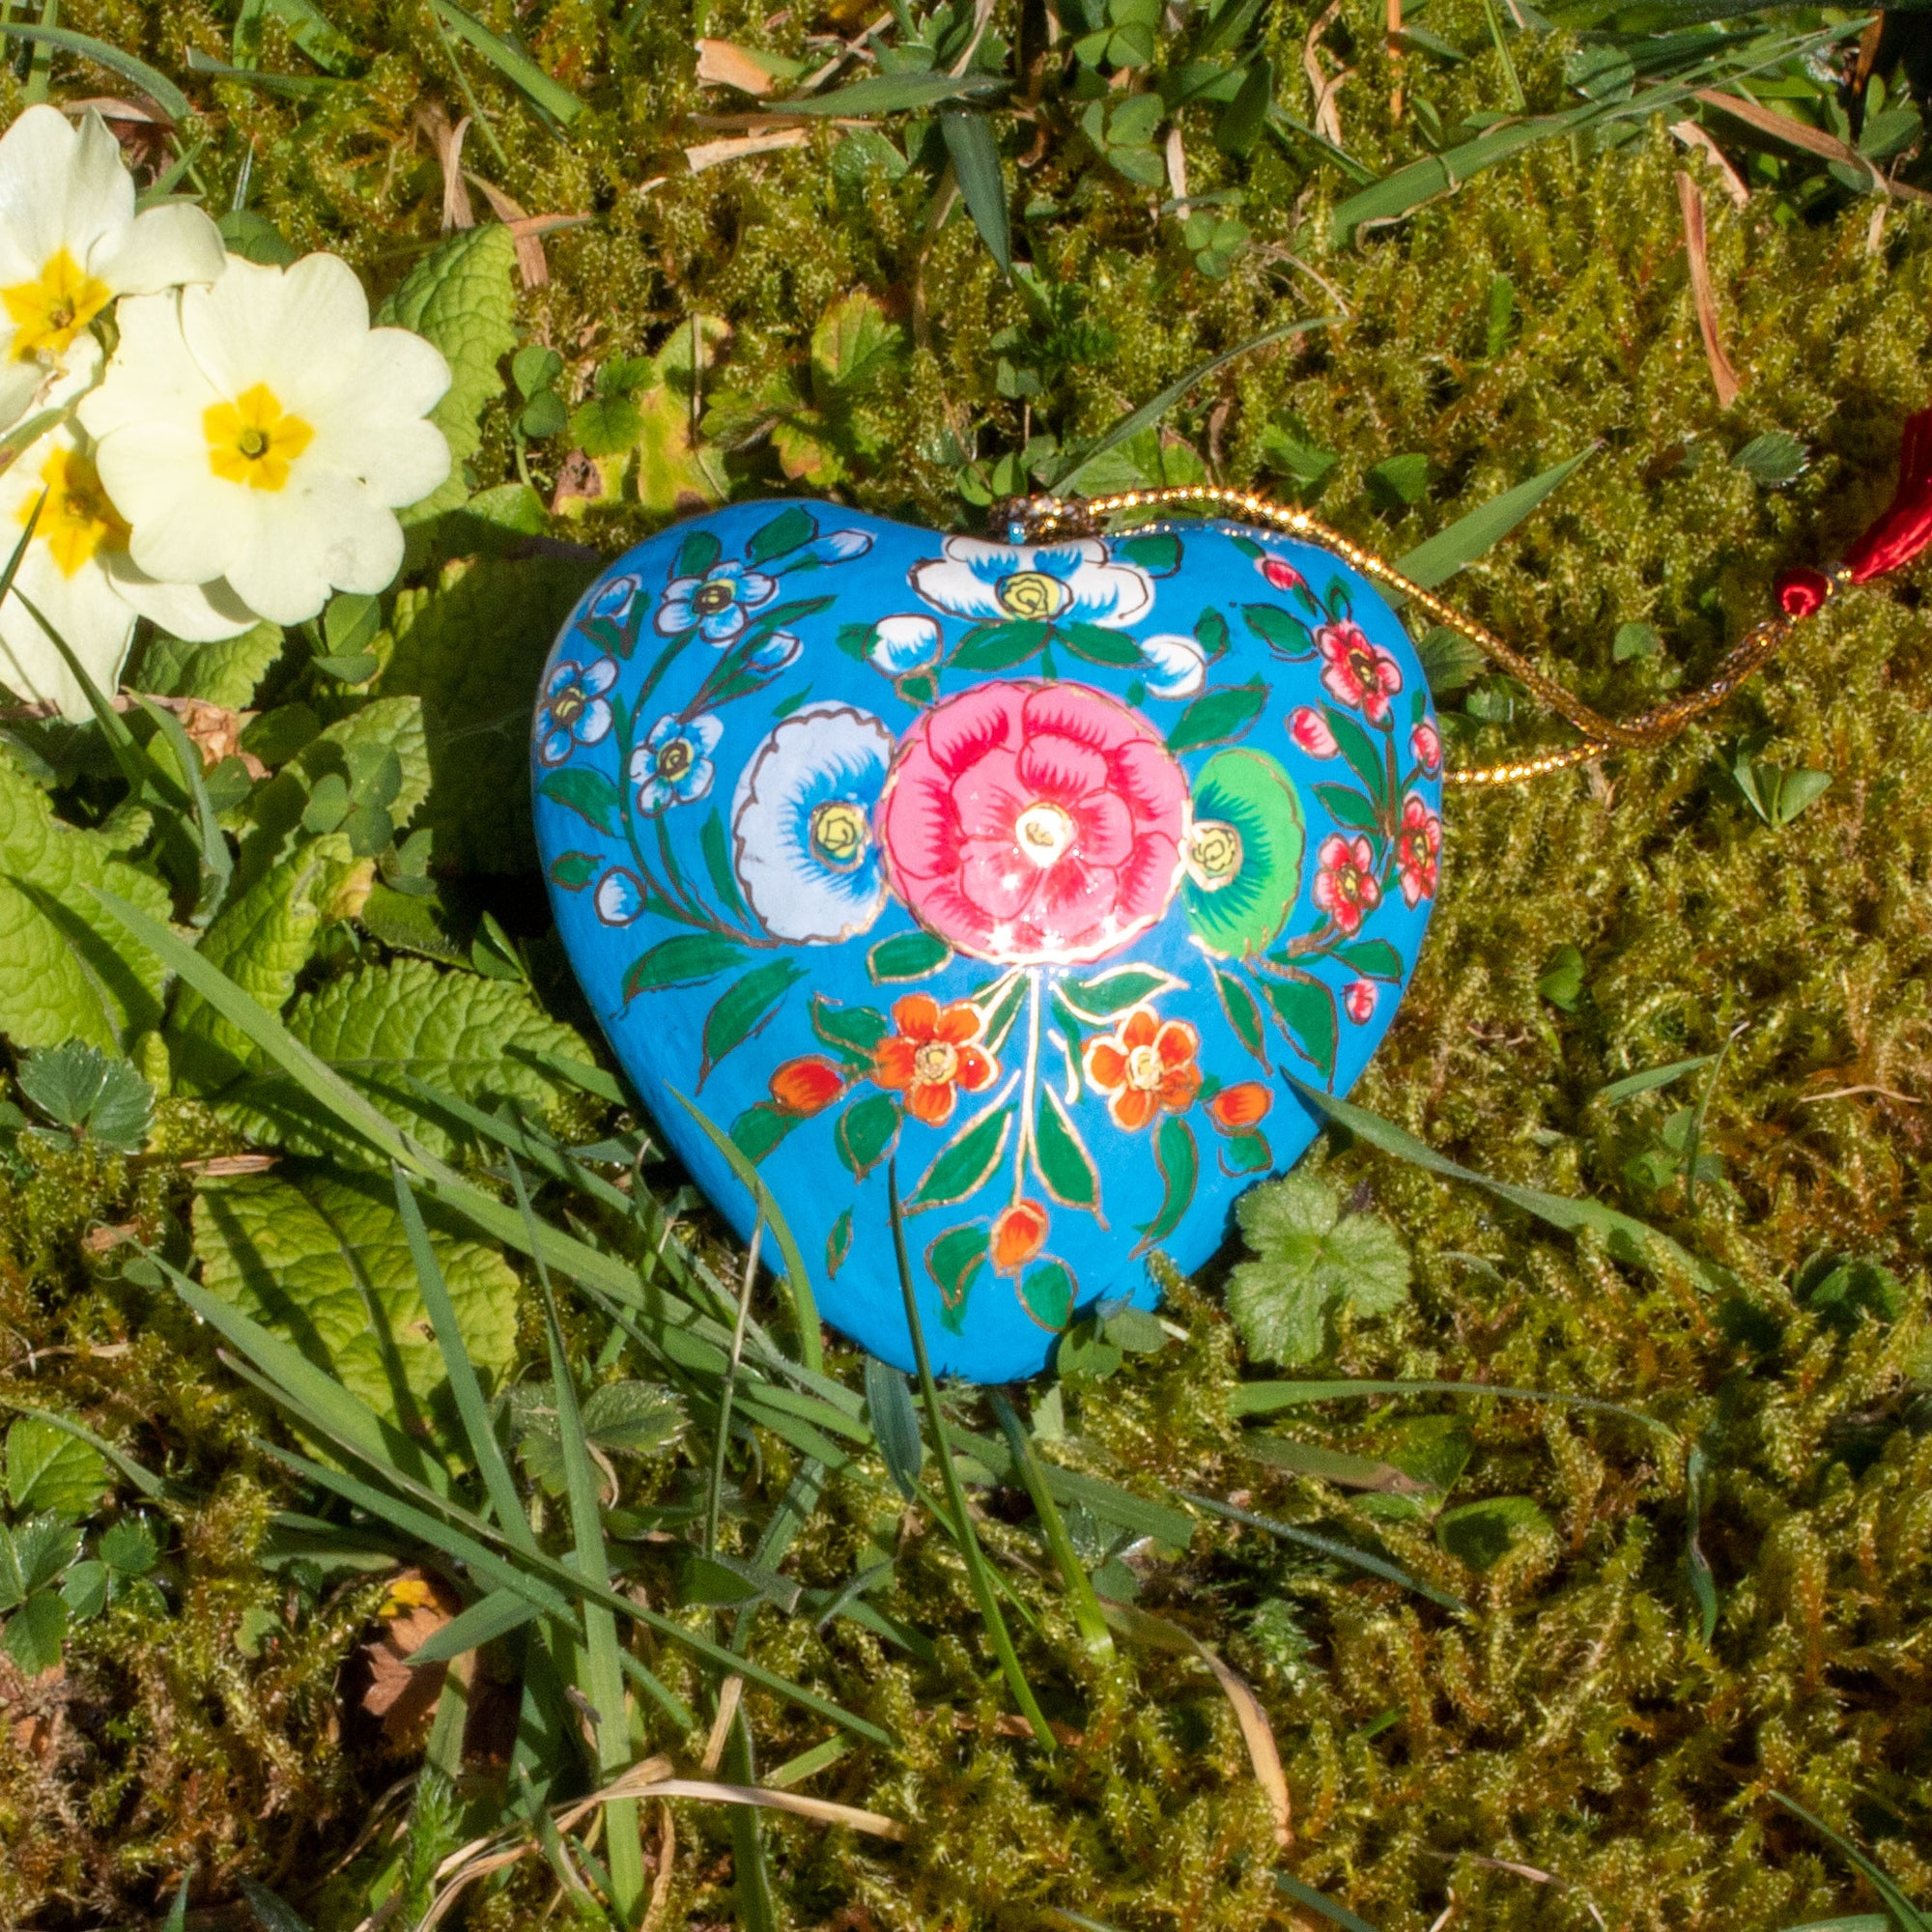 Spring/Easter Decoration - Blue Heart With Painted Flowers | Decoration - The Naughty Shrew